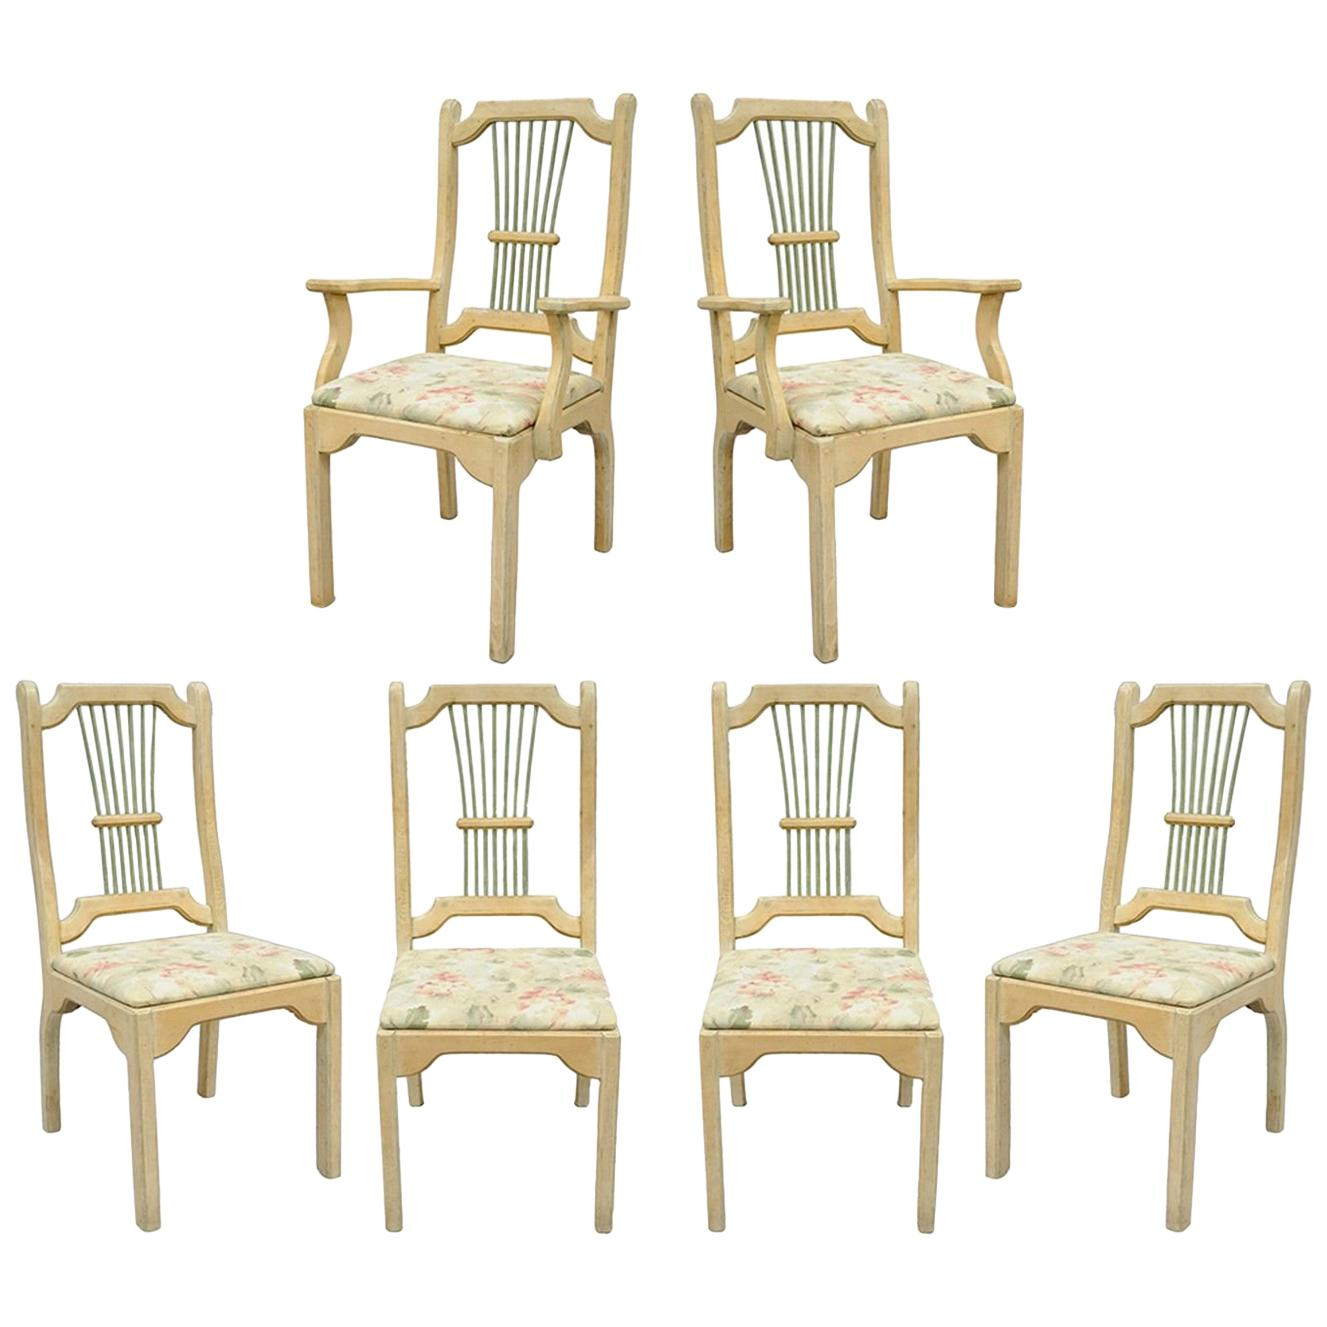 Set of Six Rustic Primitive French Country Wood Spindle Dining Chairs Cabin Vtg